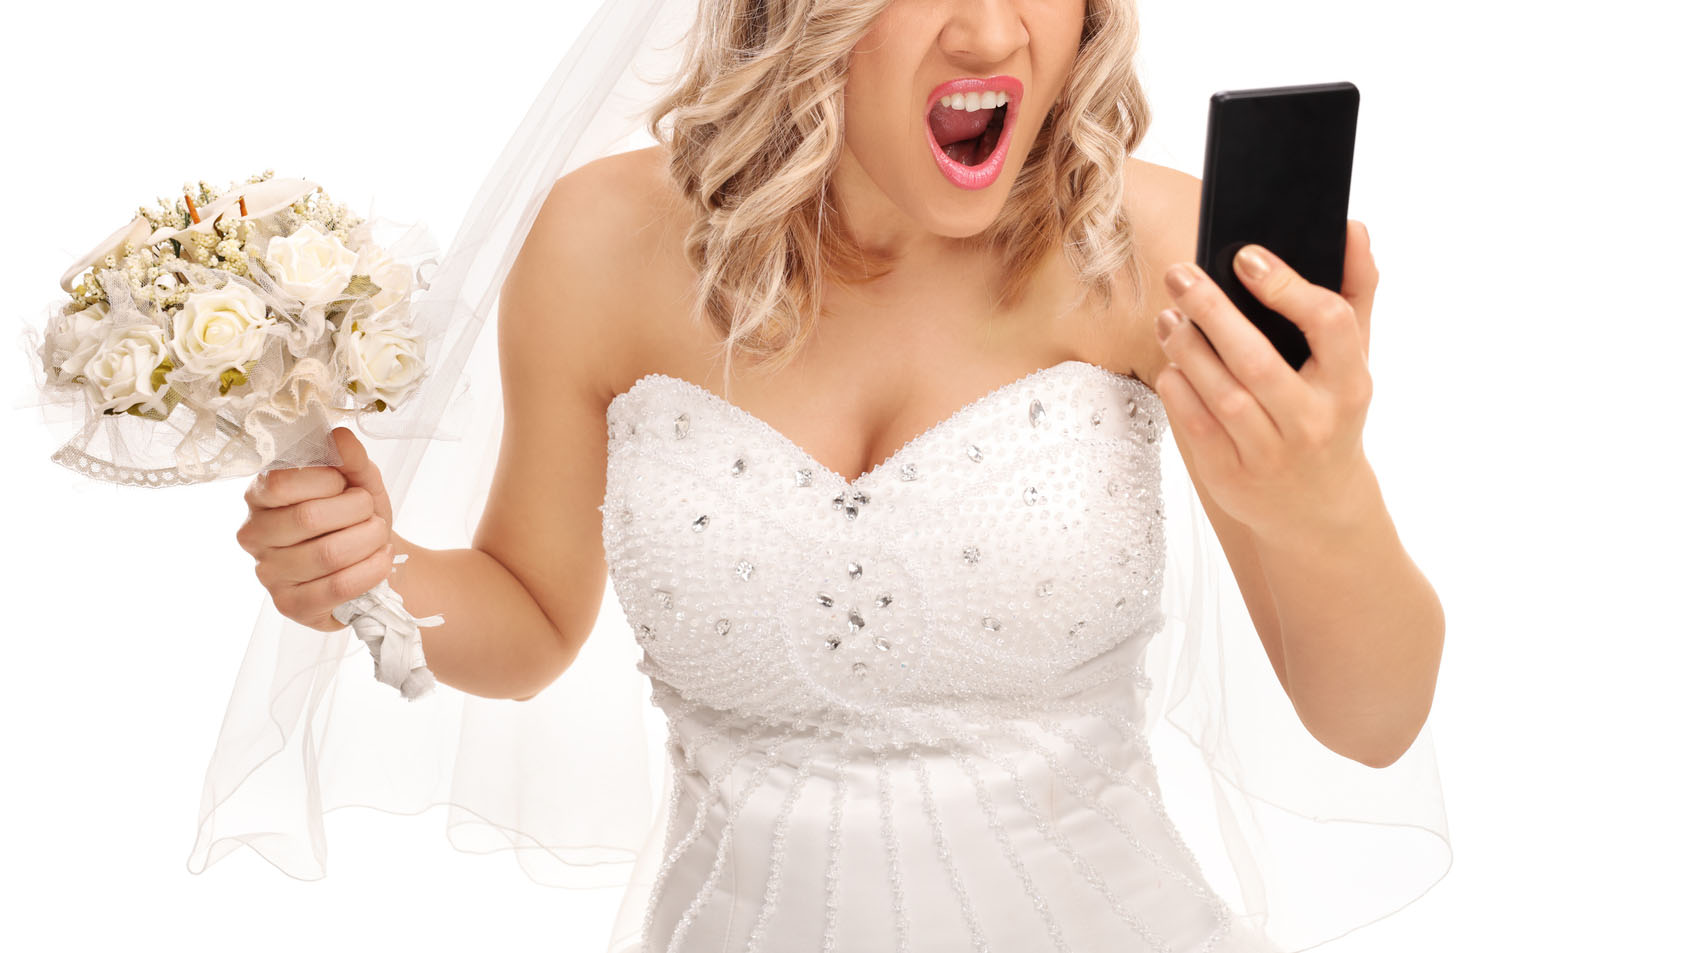 Bride-to-be puts stranger's email address on invitations, demands to be given account